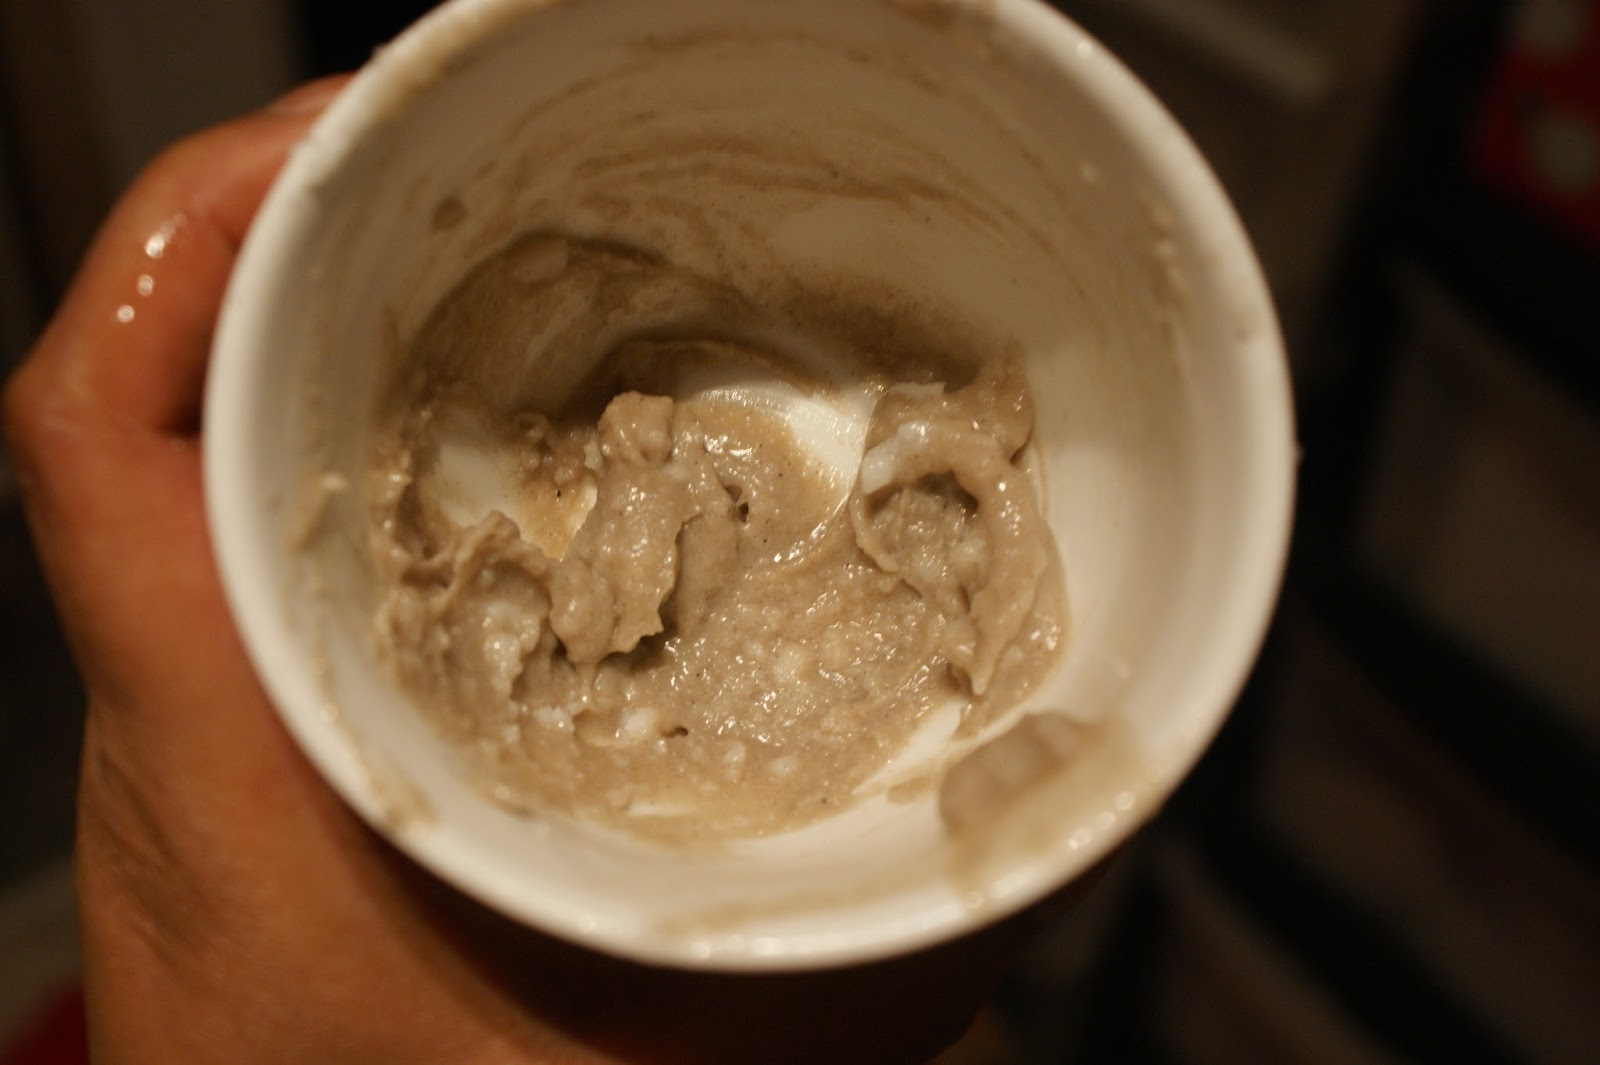 bentonite clay mask diy